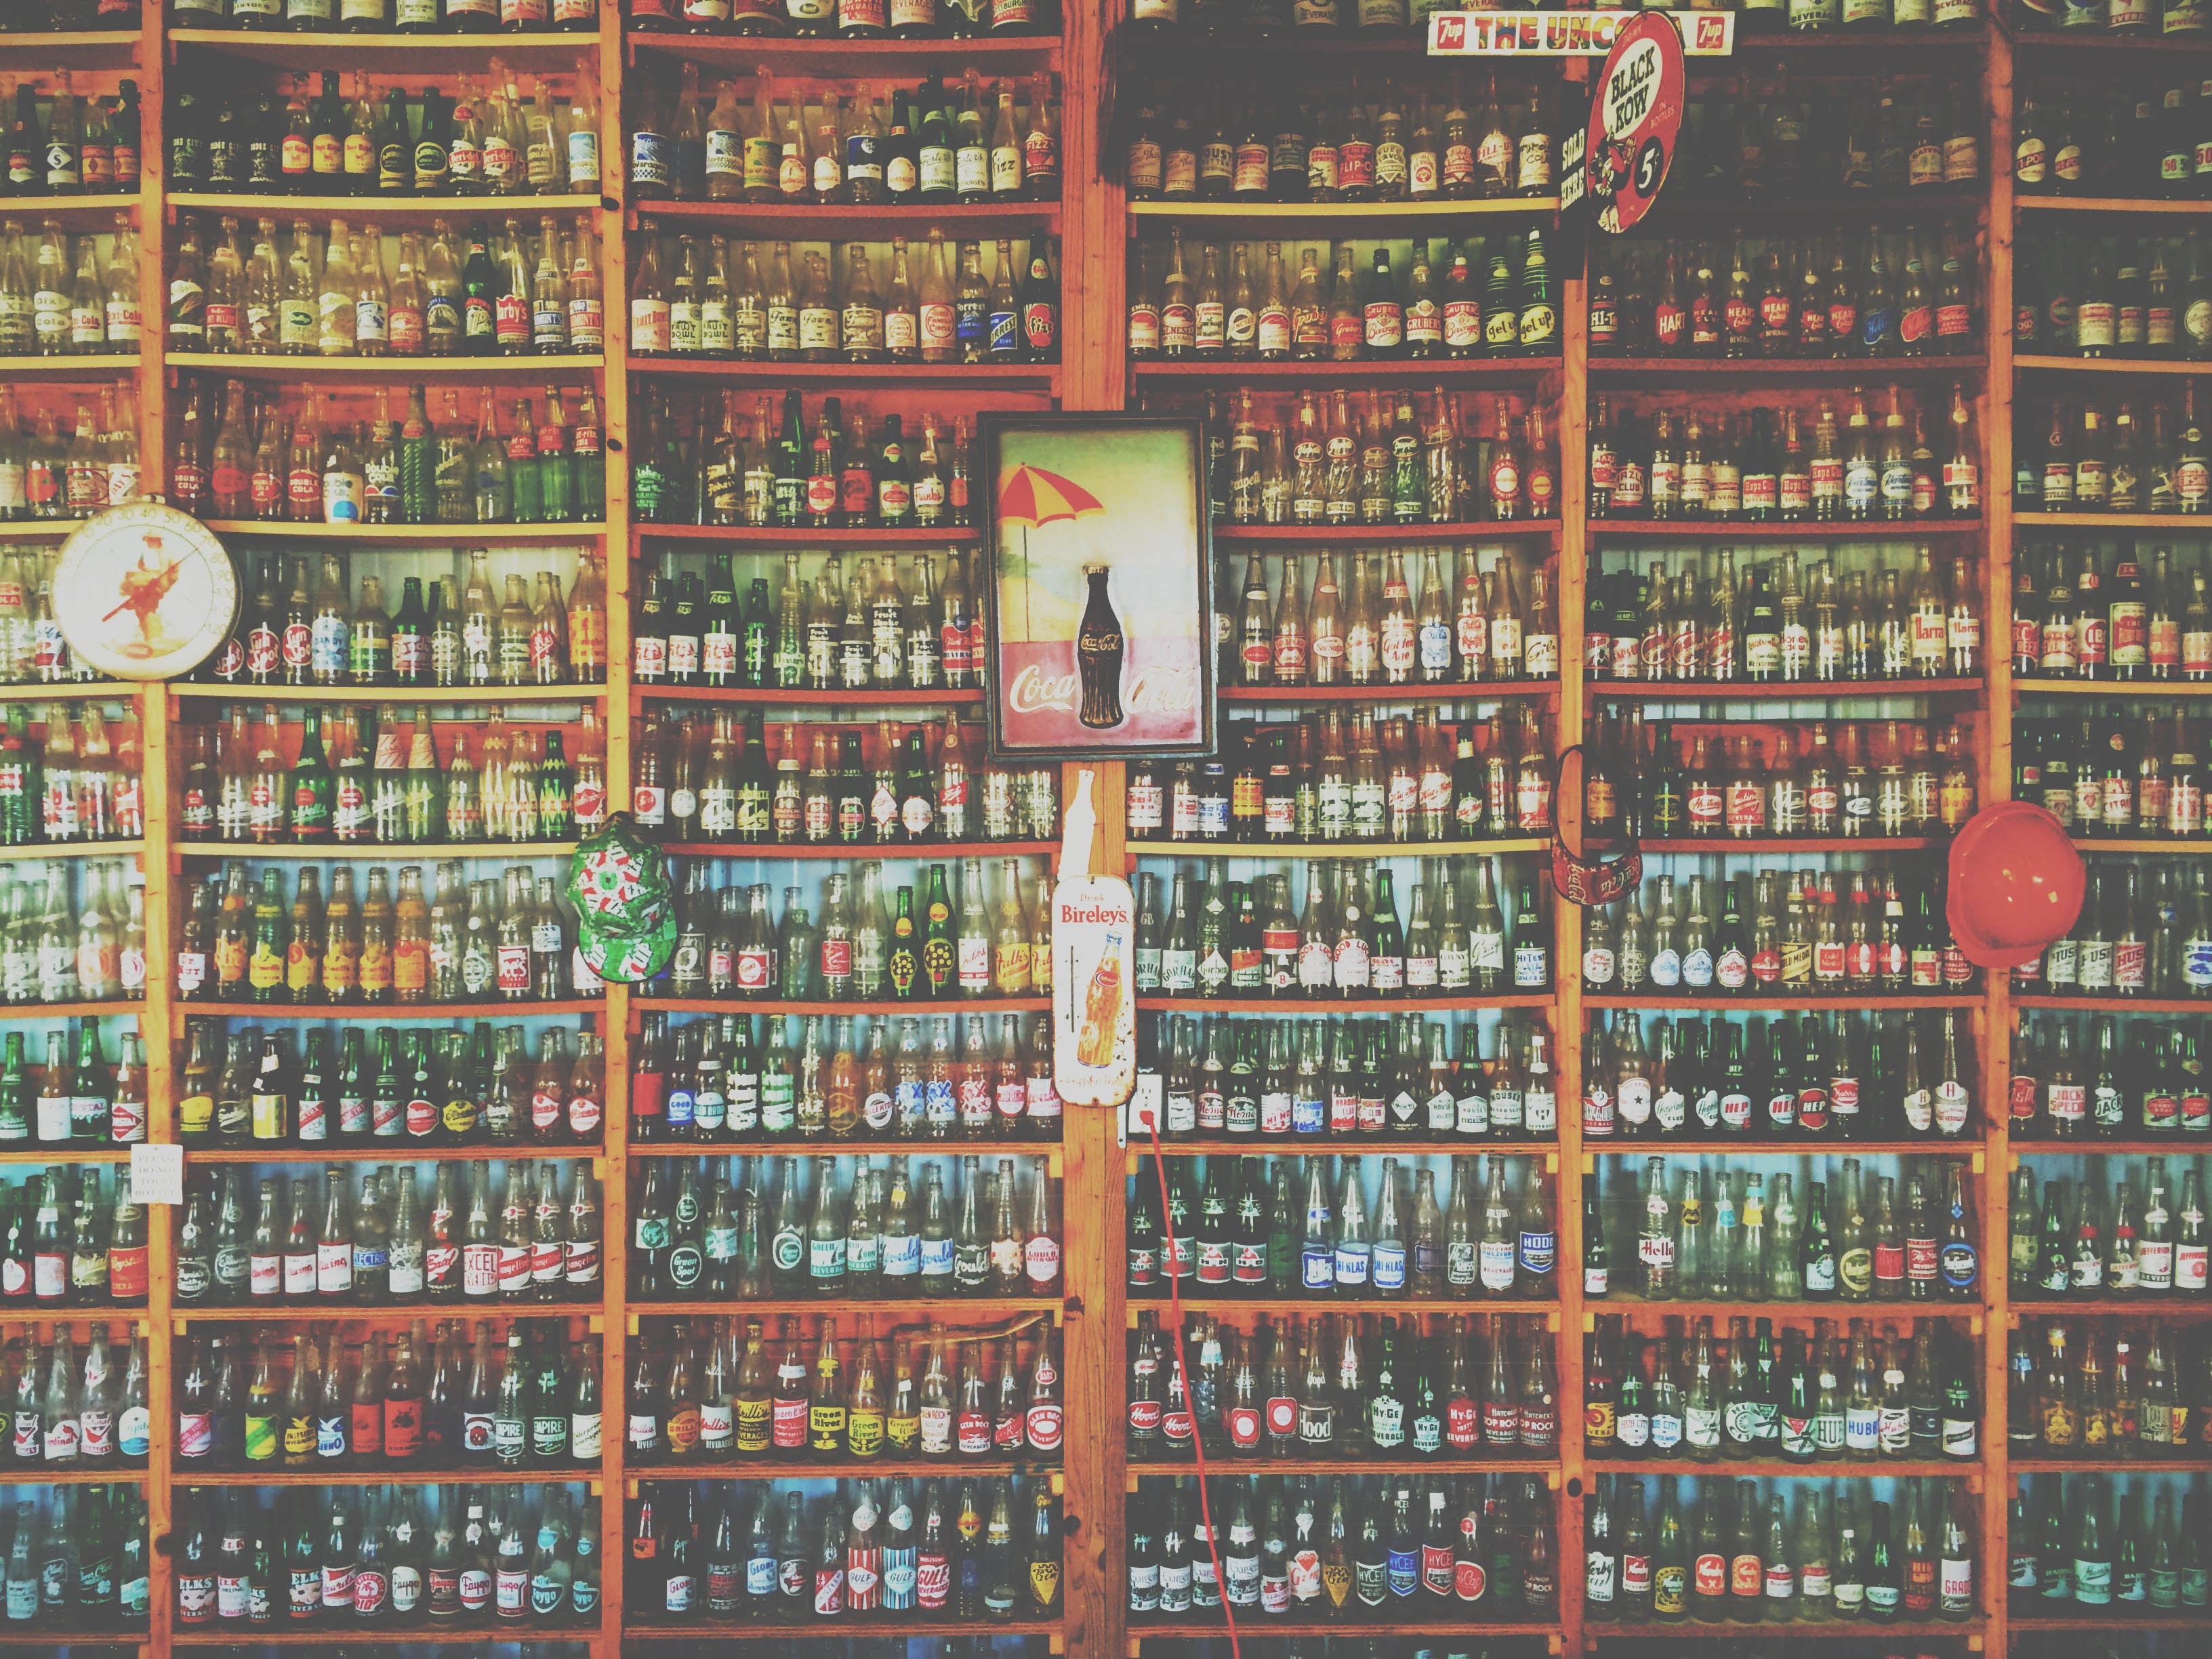 A collection of vintage Coca-Cola bottles on a large shelf.